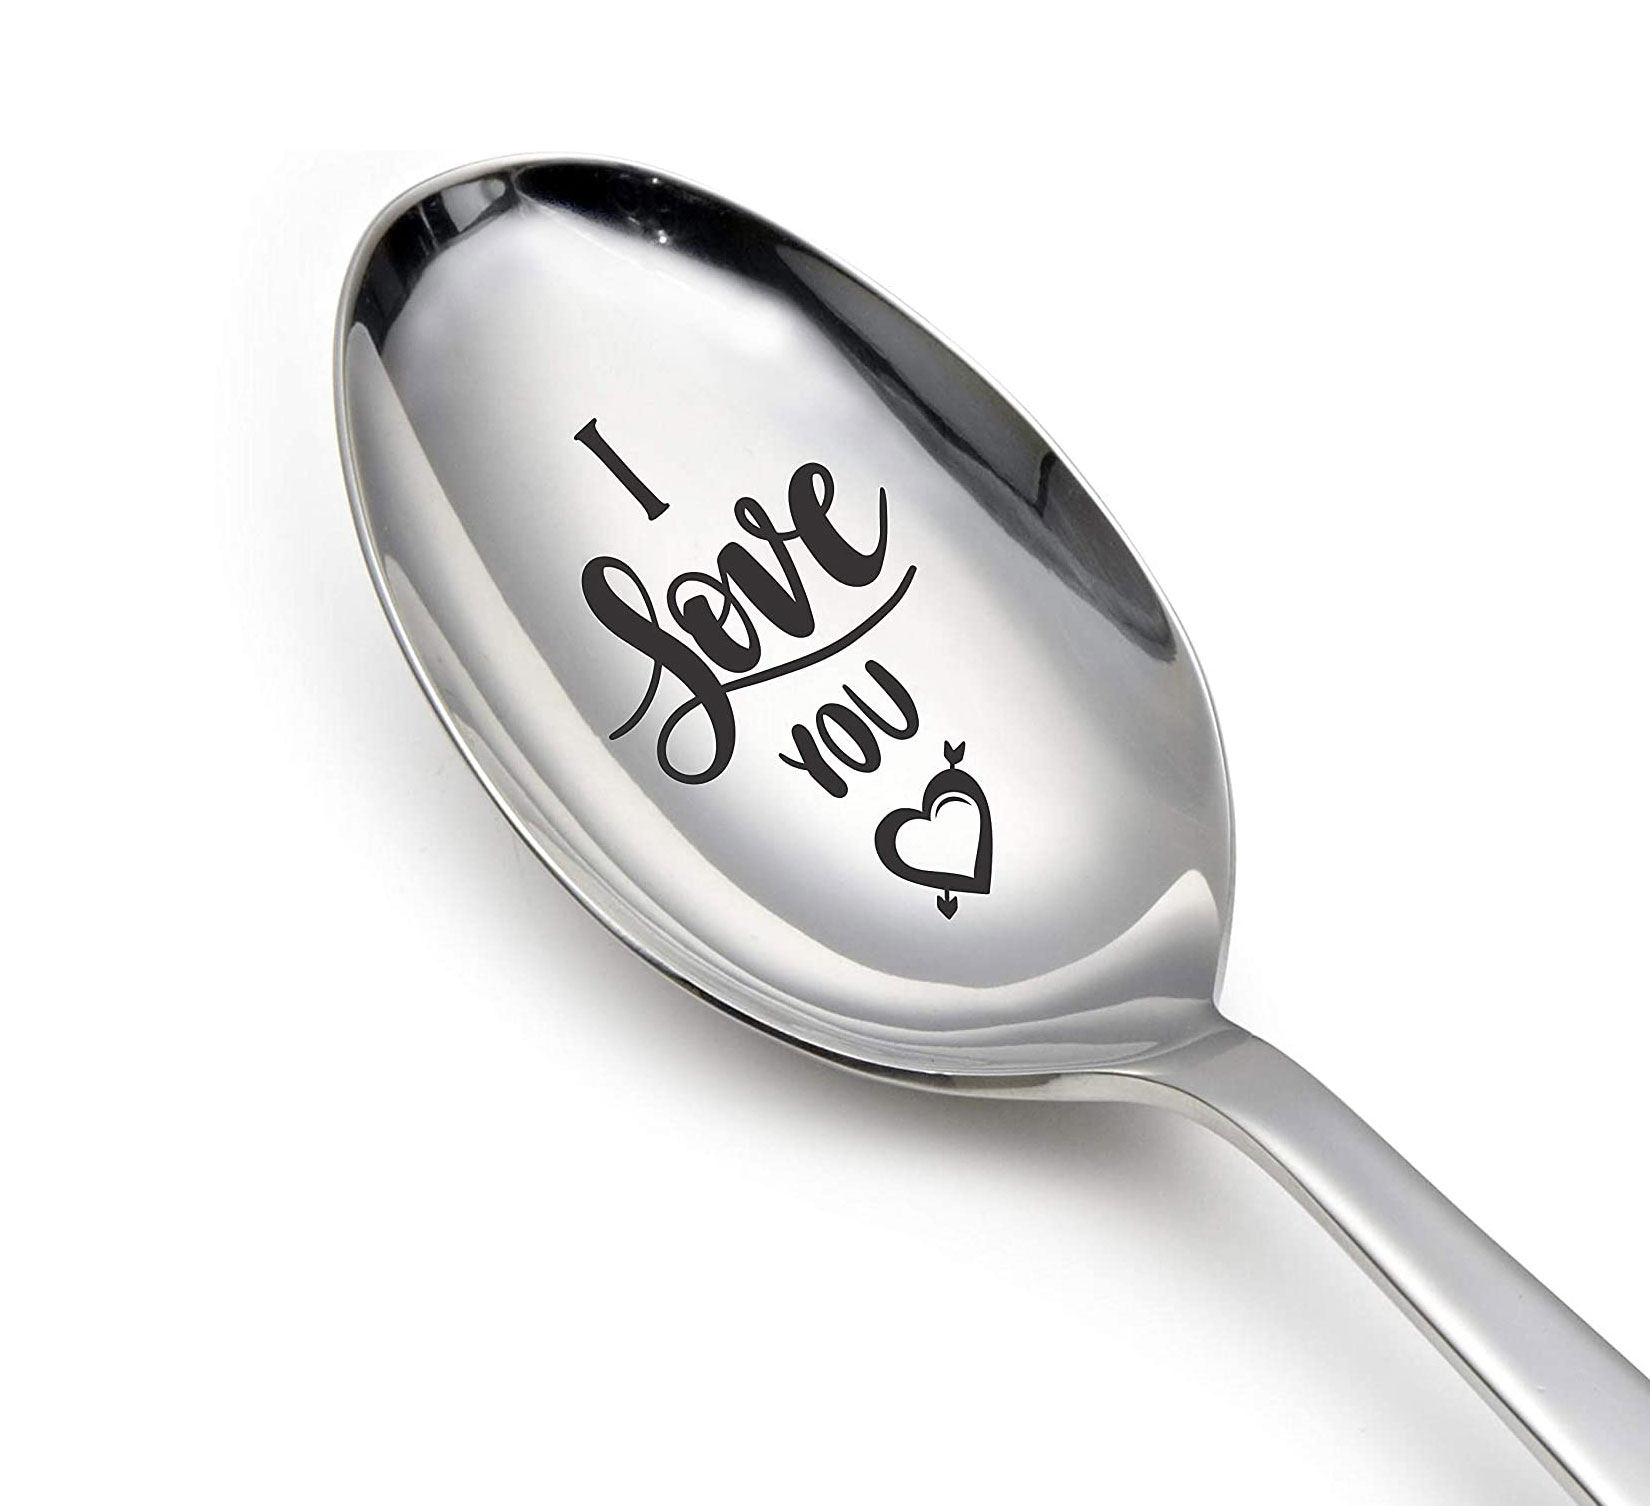 Engraved spoon (I love you)